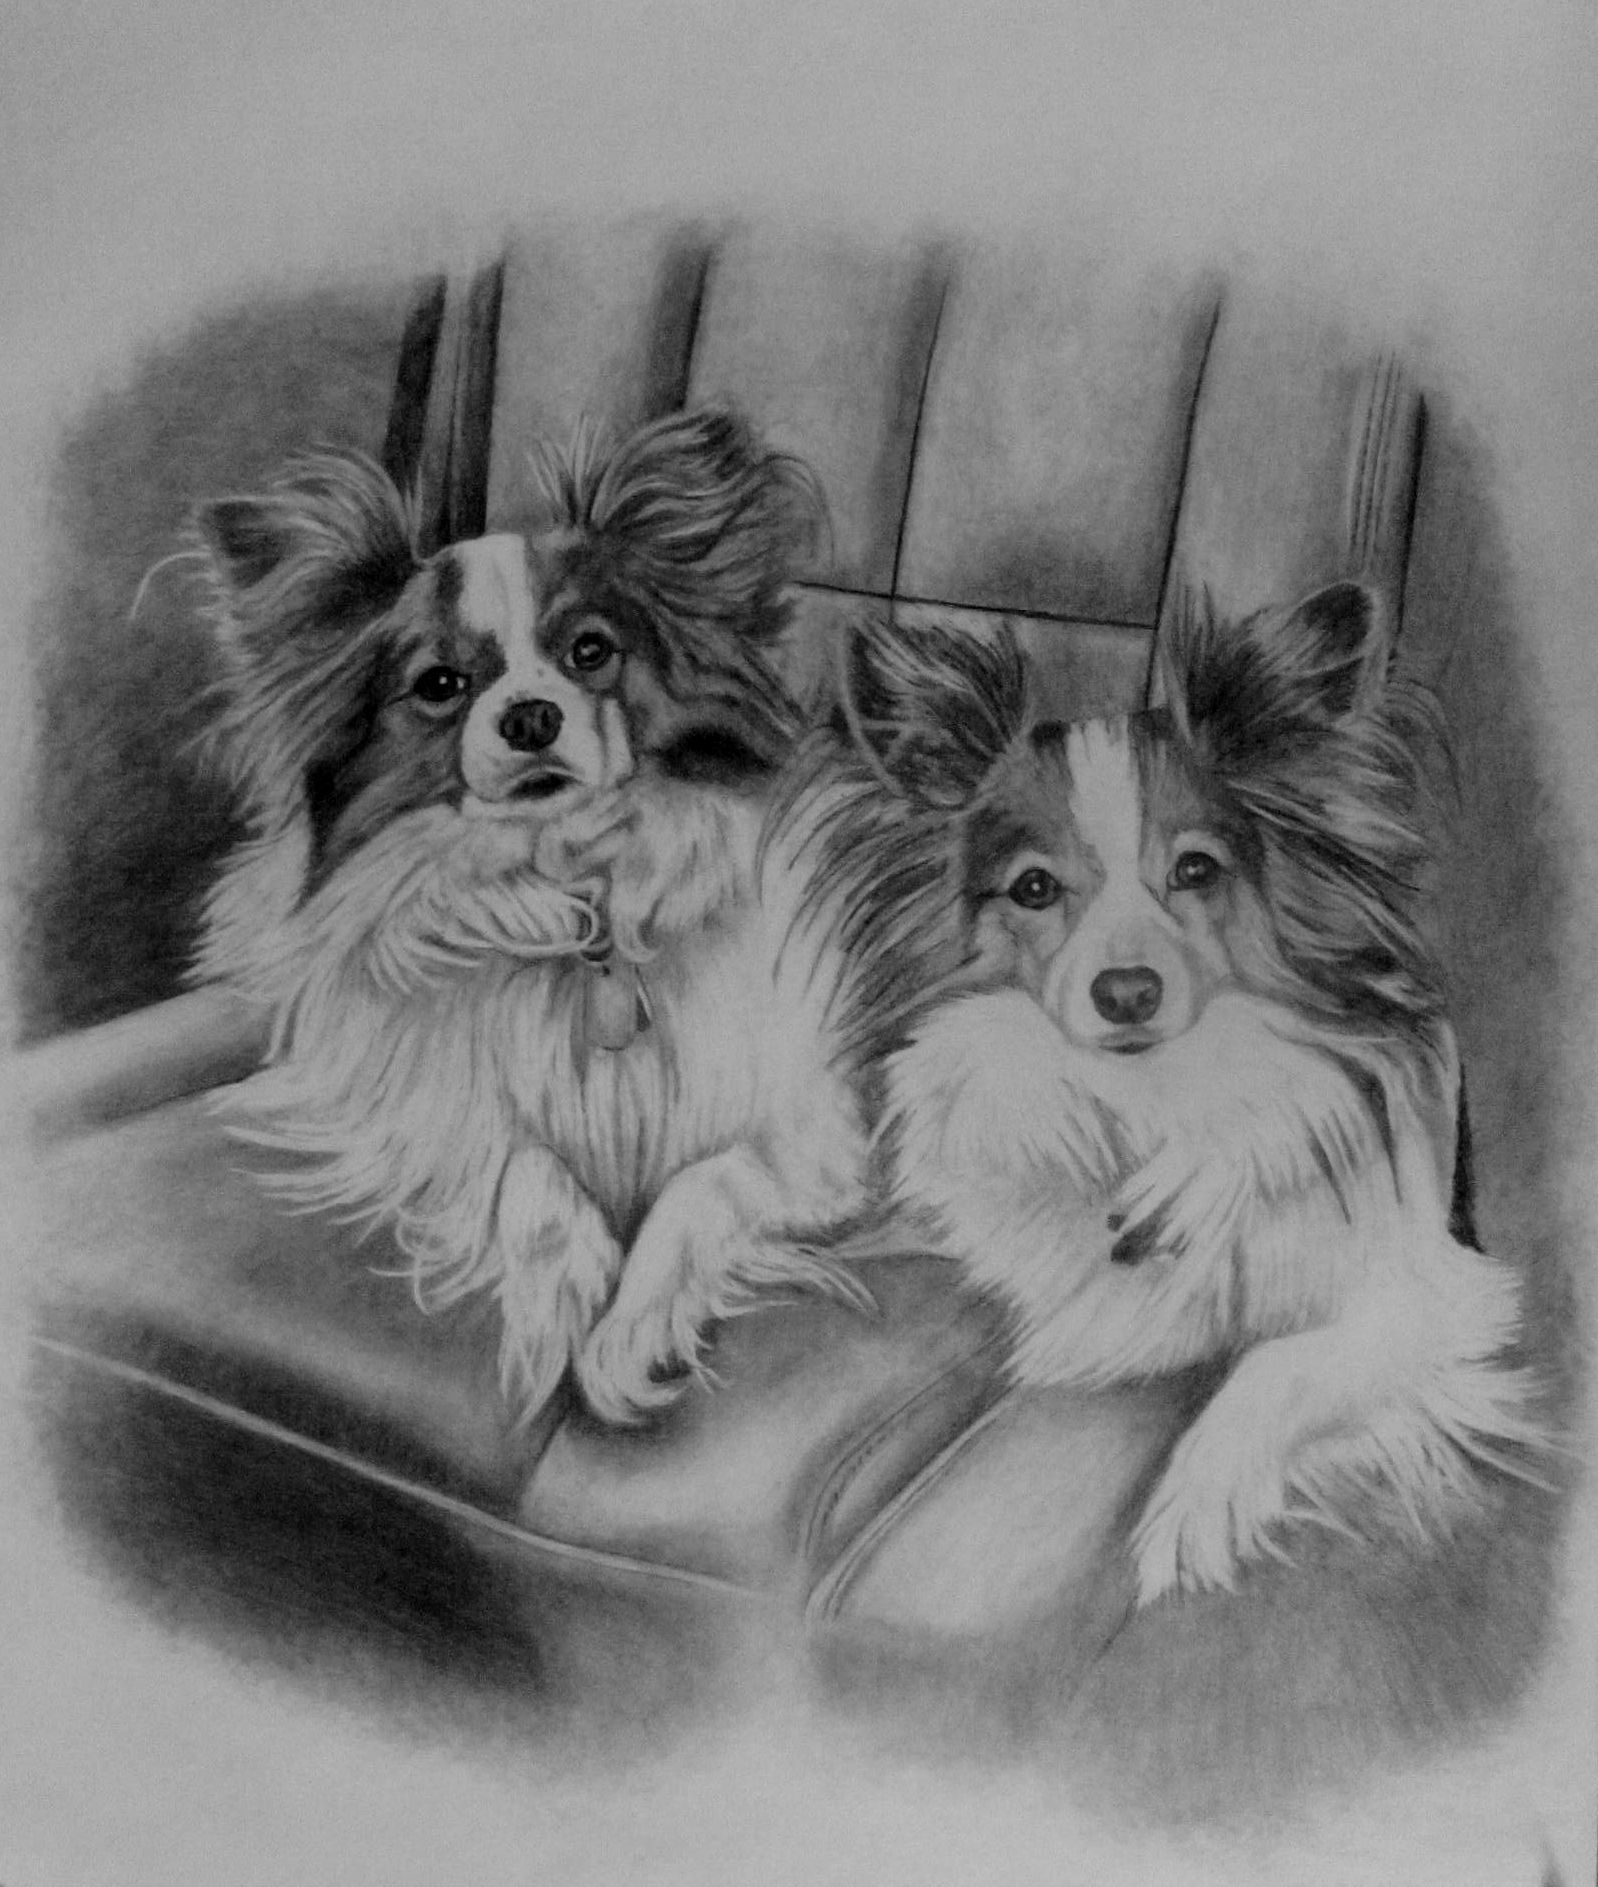 Rascal Scooter Sketch 2 Papillons That A Client Owns She Had Me Sketch For Her Commissions Welcome Visit Http Pet Portraits Papillon Dog Papillion Dog [ 1887 x 1598 Pixel ]